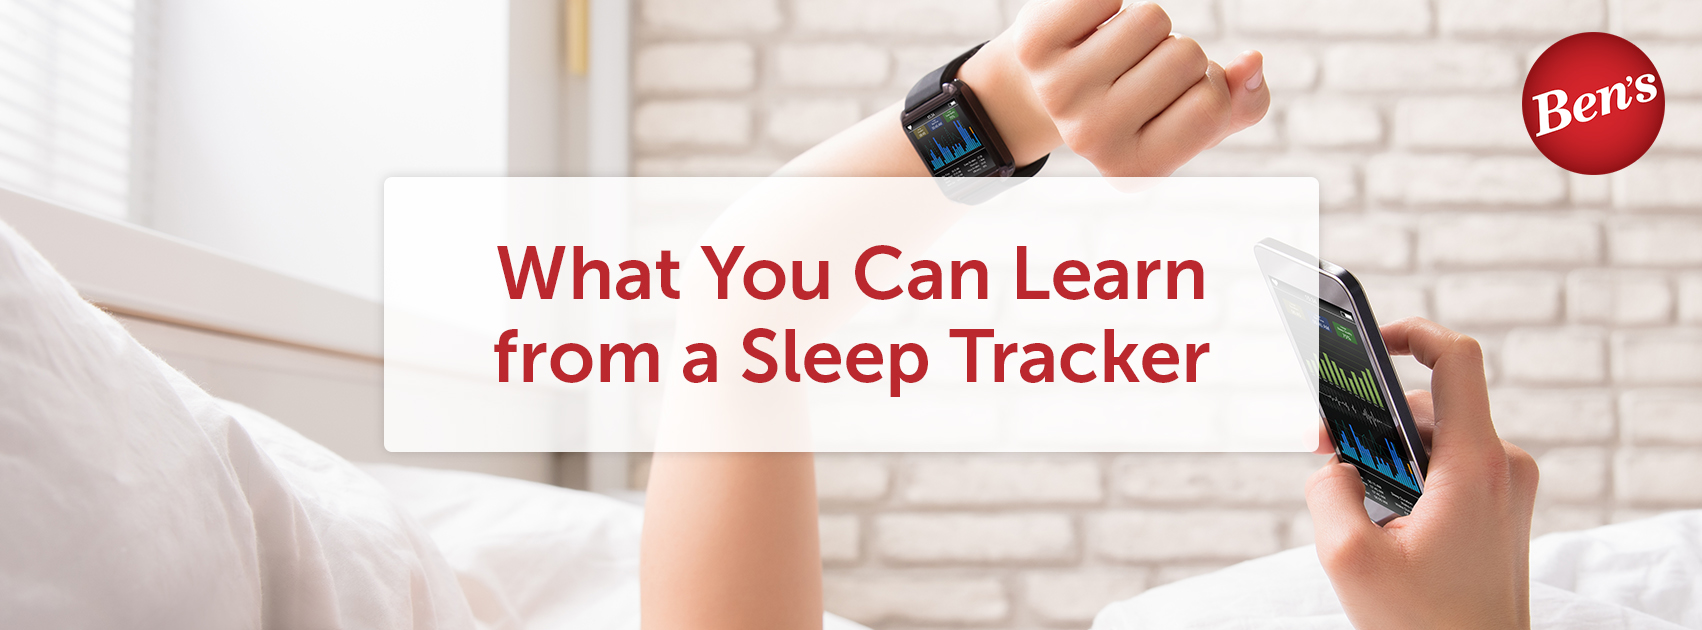 What You Can Learn from a Sleep Tracker